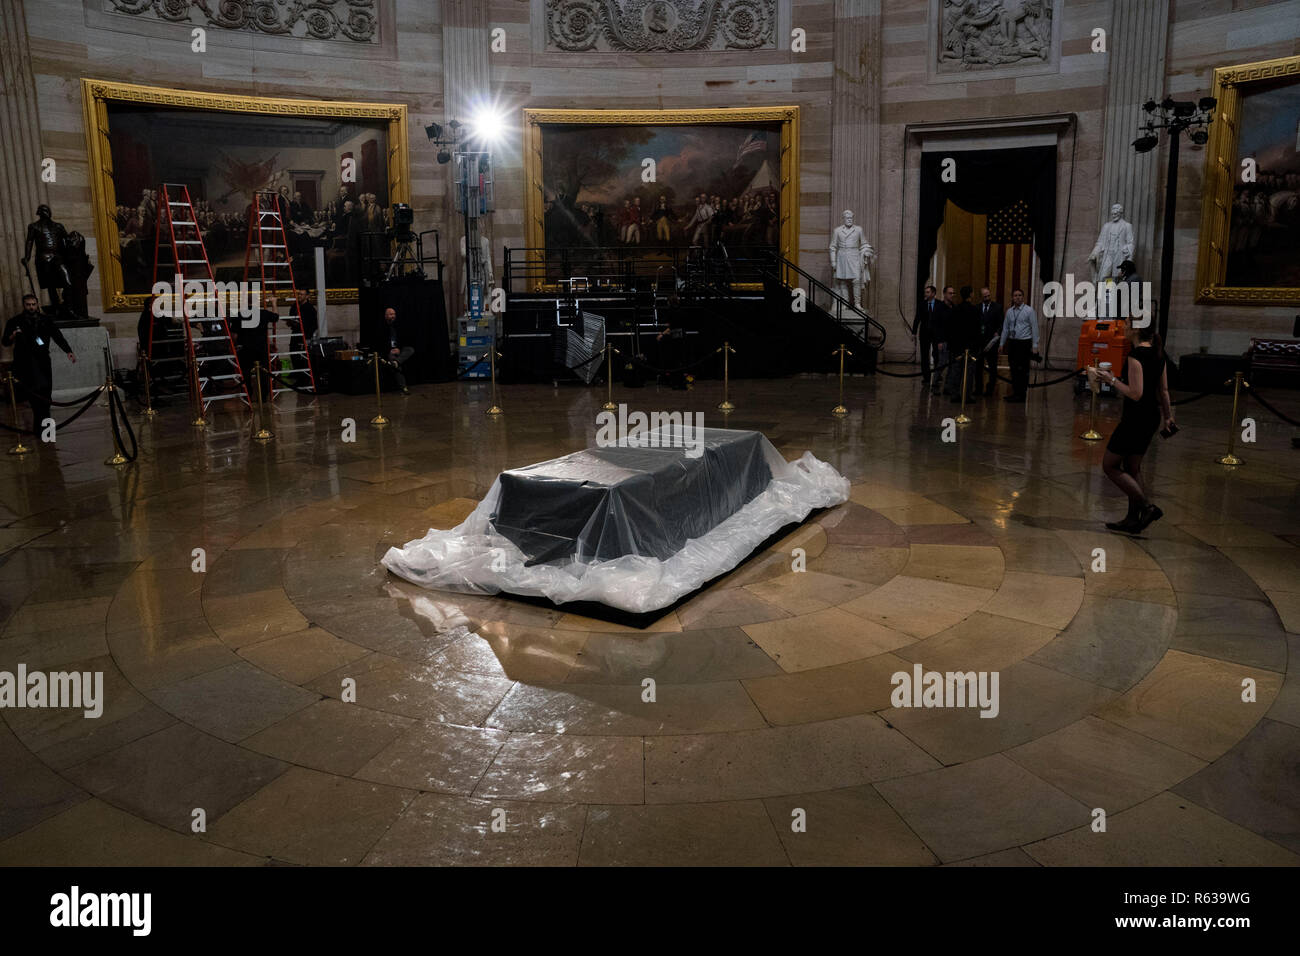 Washington, United States Of America. 03rd Dec, 2018. Test Monday, Nov. 3, 2018. (POOL PHOTO by Doug Mills/The New York Times) | usage worldwide Credit: dpa/Alamy Live News - Stock Image